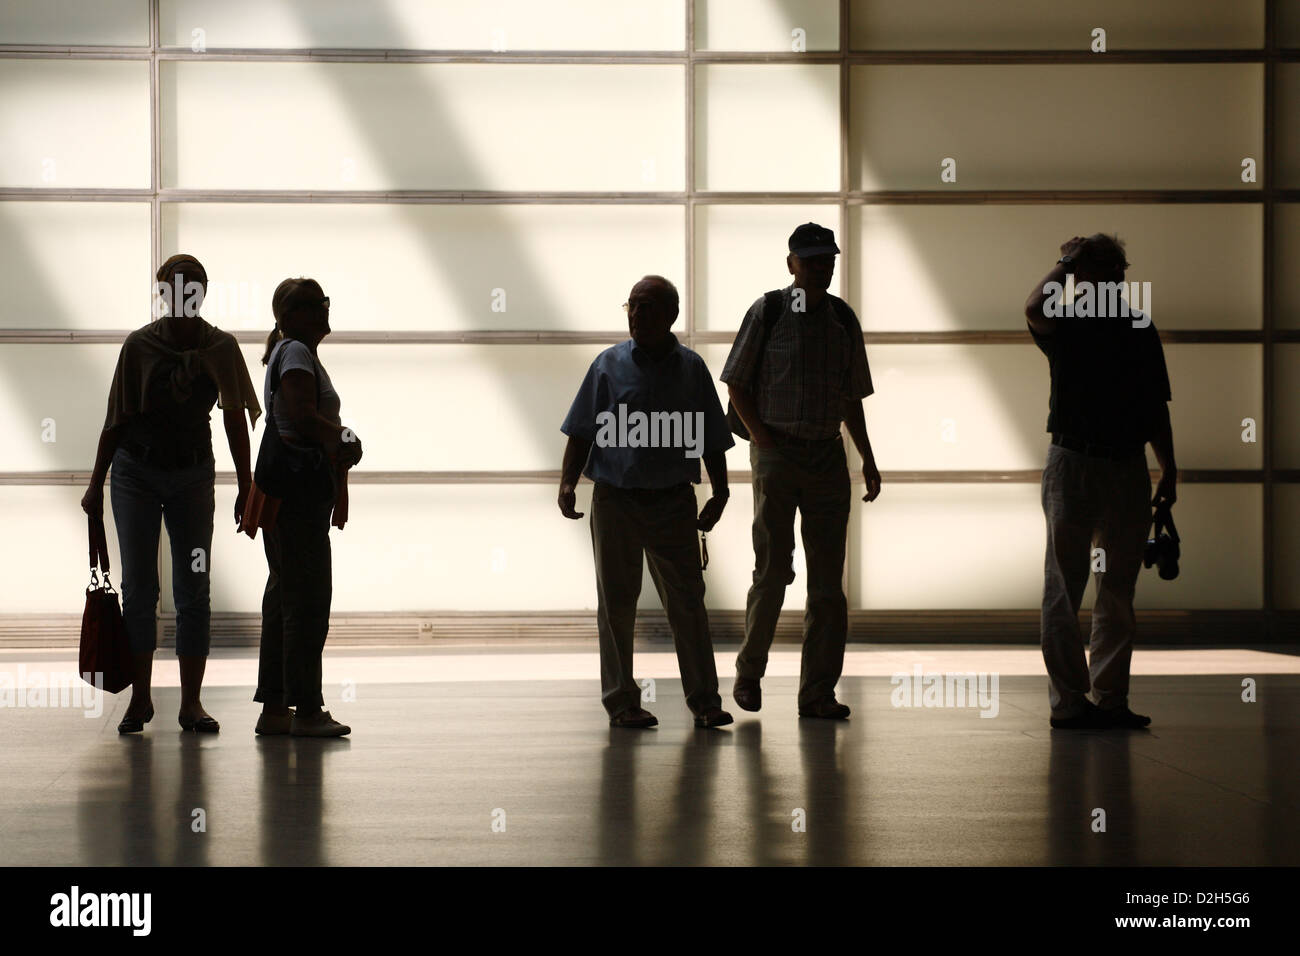 Berlin, Germany, several people silhouettes - Stock Image